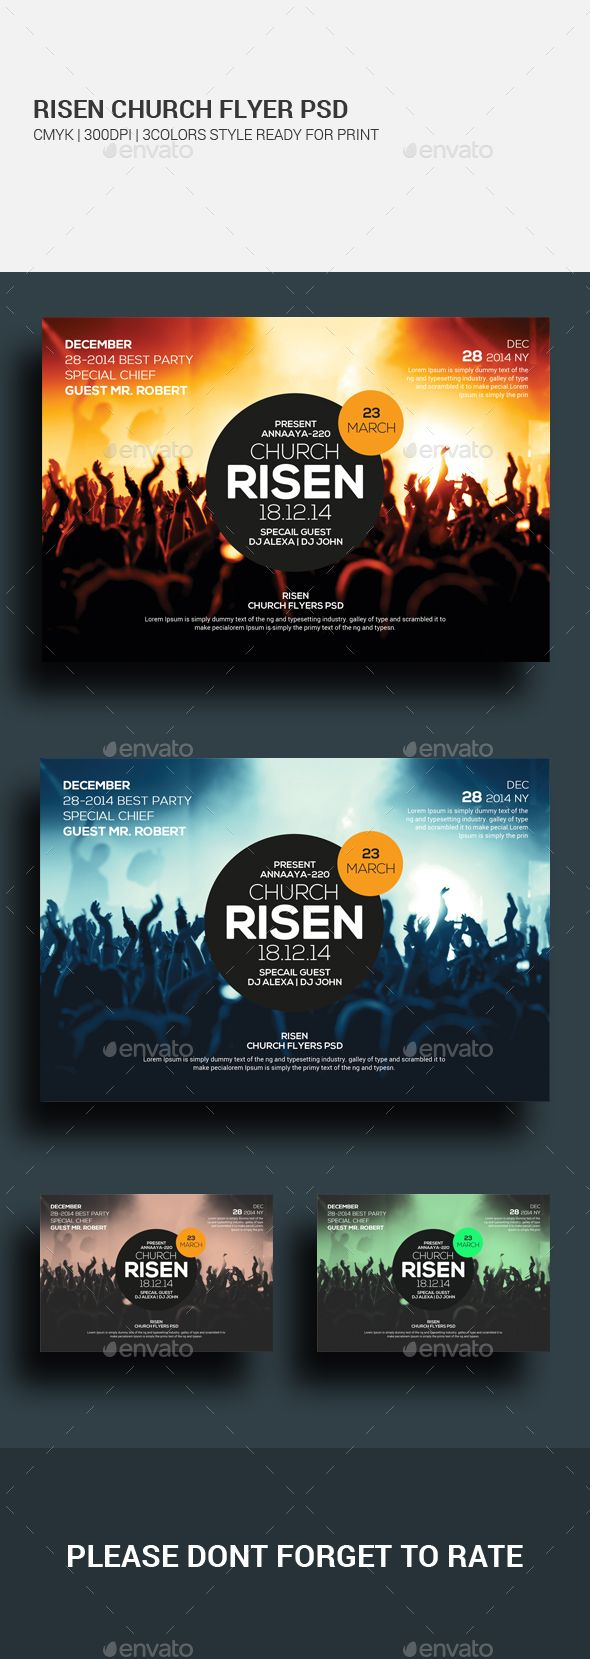 Easter Sunday Church PSD Template Set. Download here: http://graphicriver.net/item/easter-sunday-church-template-set/14962424?ref=ksioks